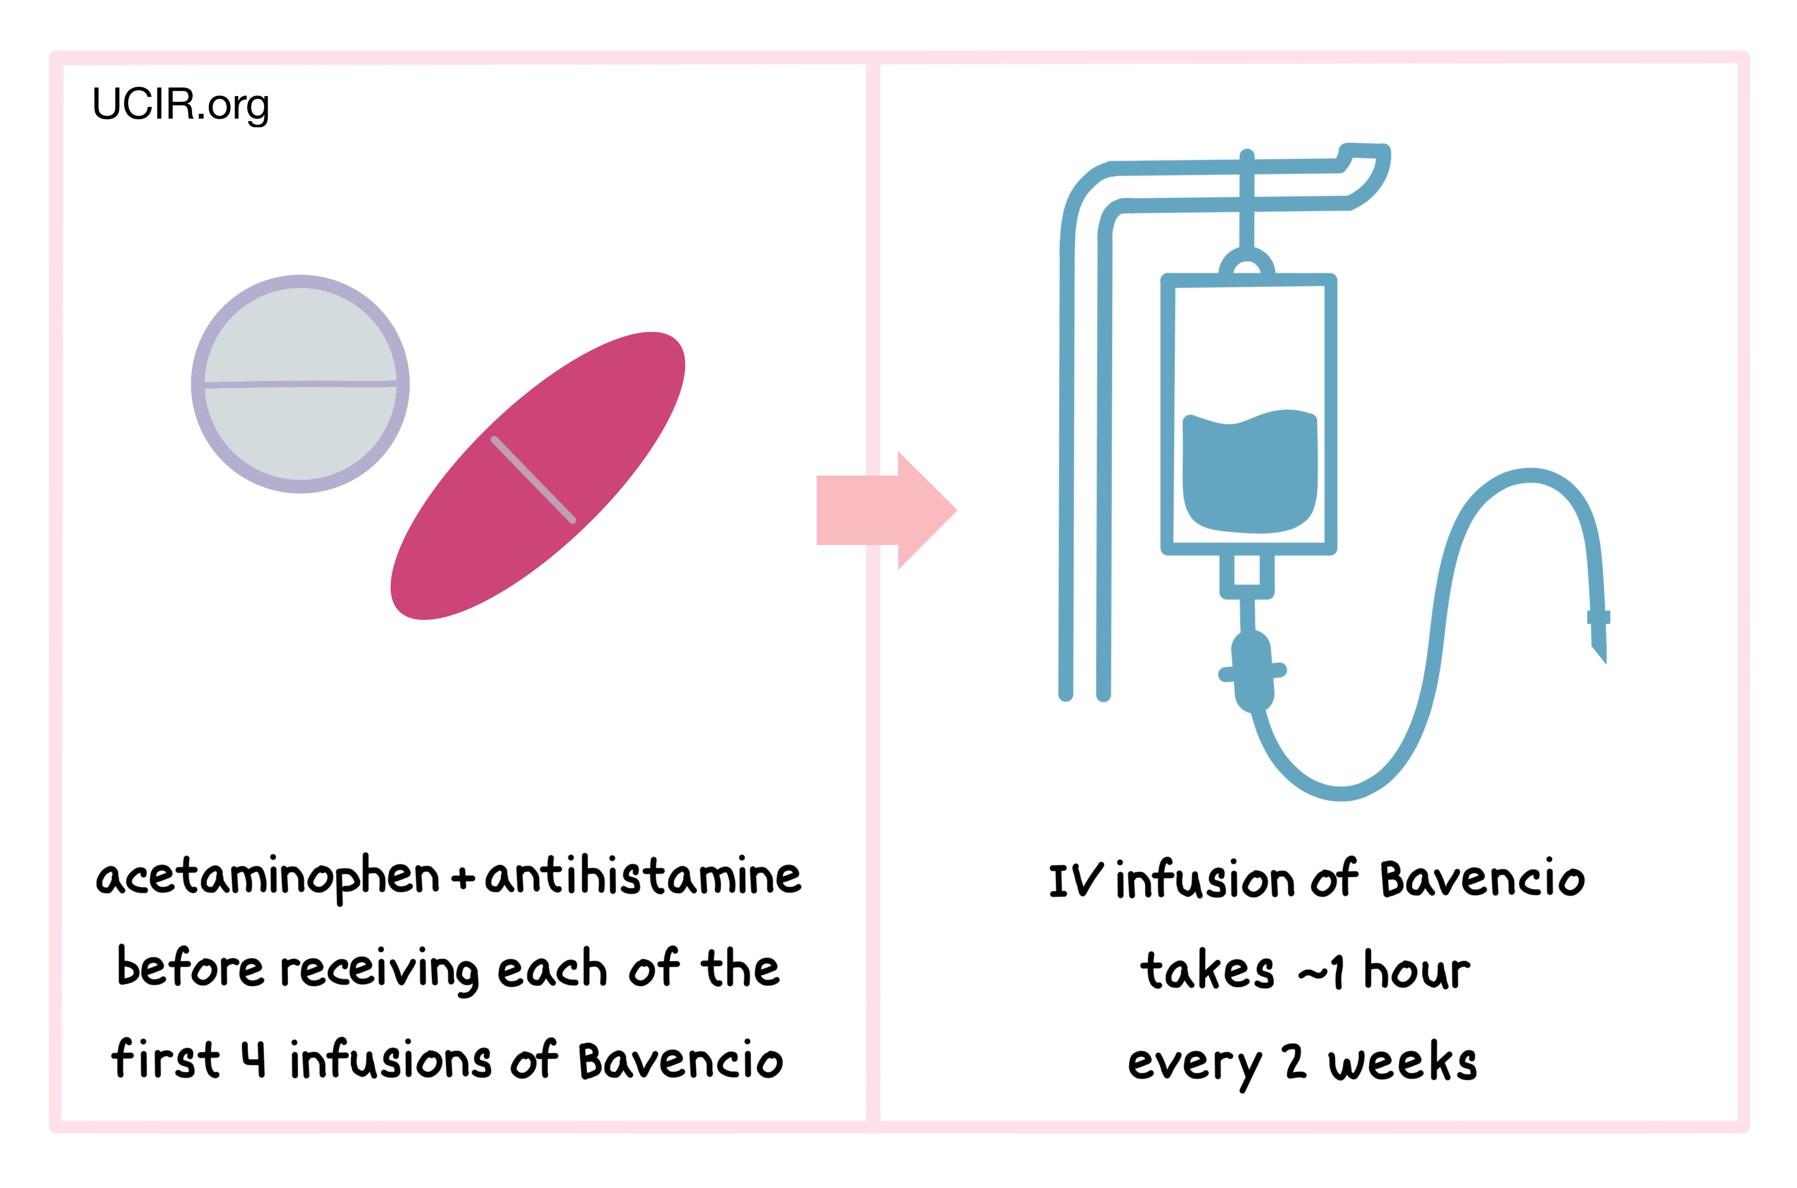 Illustration of how Bavencio is administered